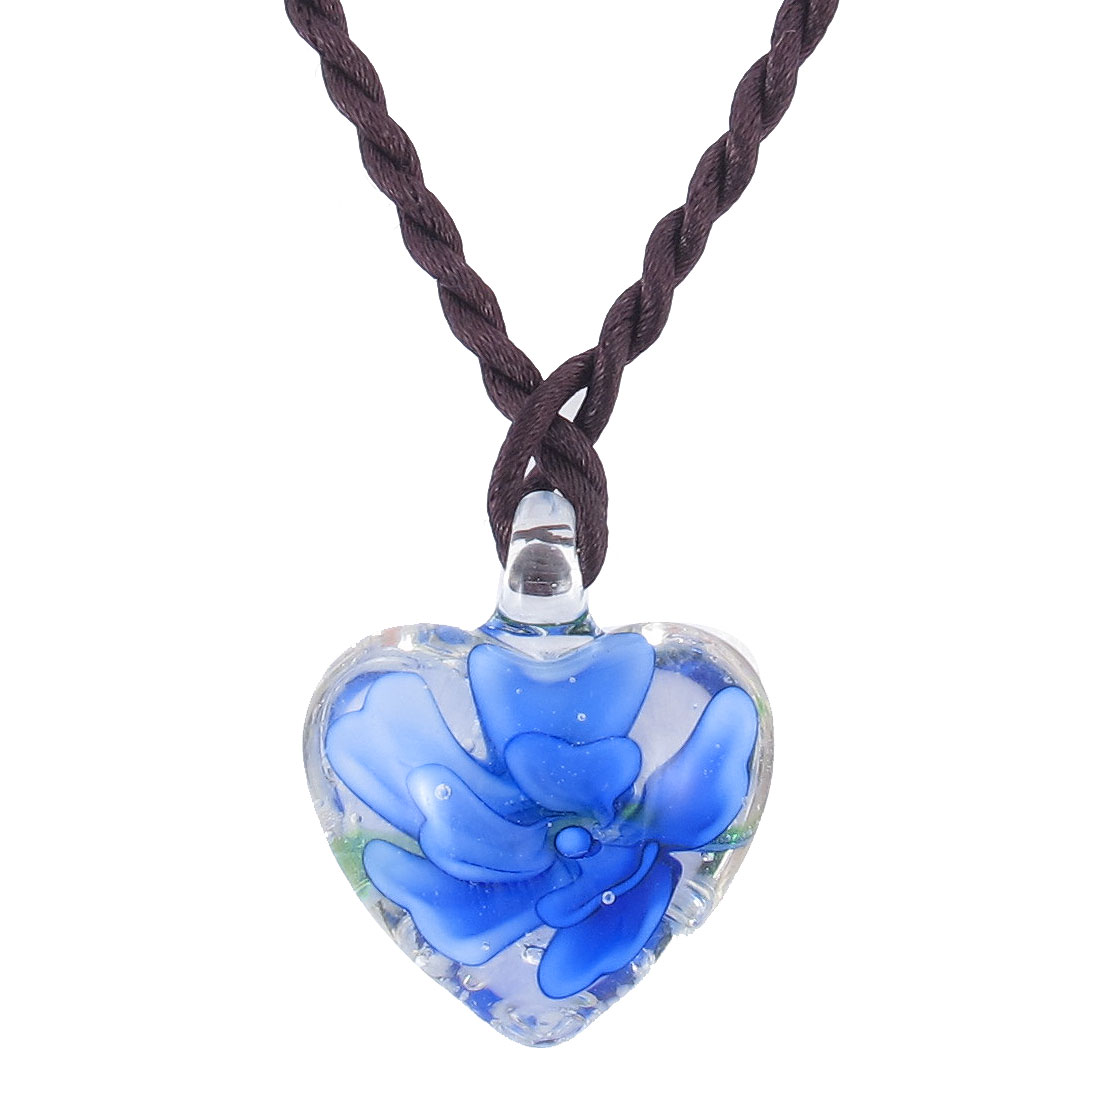 Nylon Knitted Wire Blossom Flower Heart Glass Pendant Necklace Blue